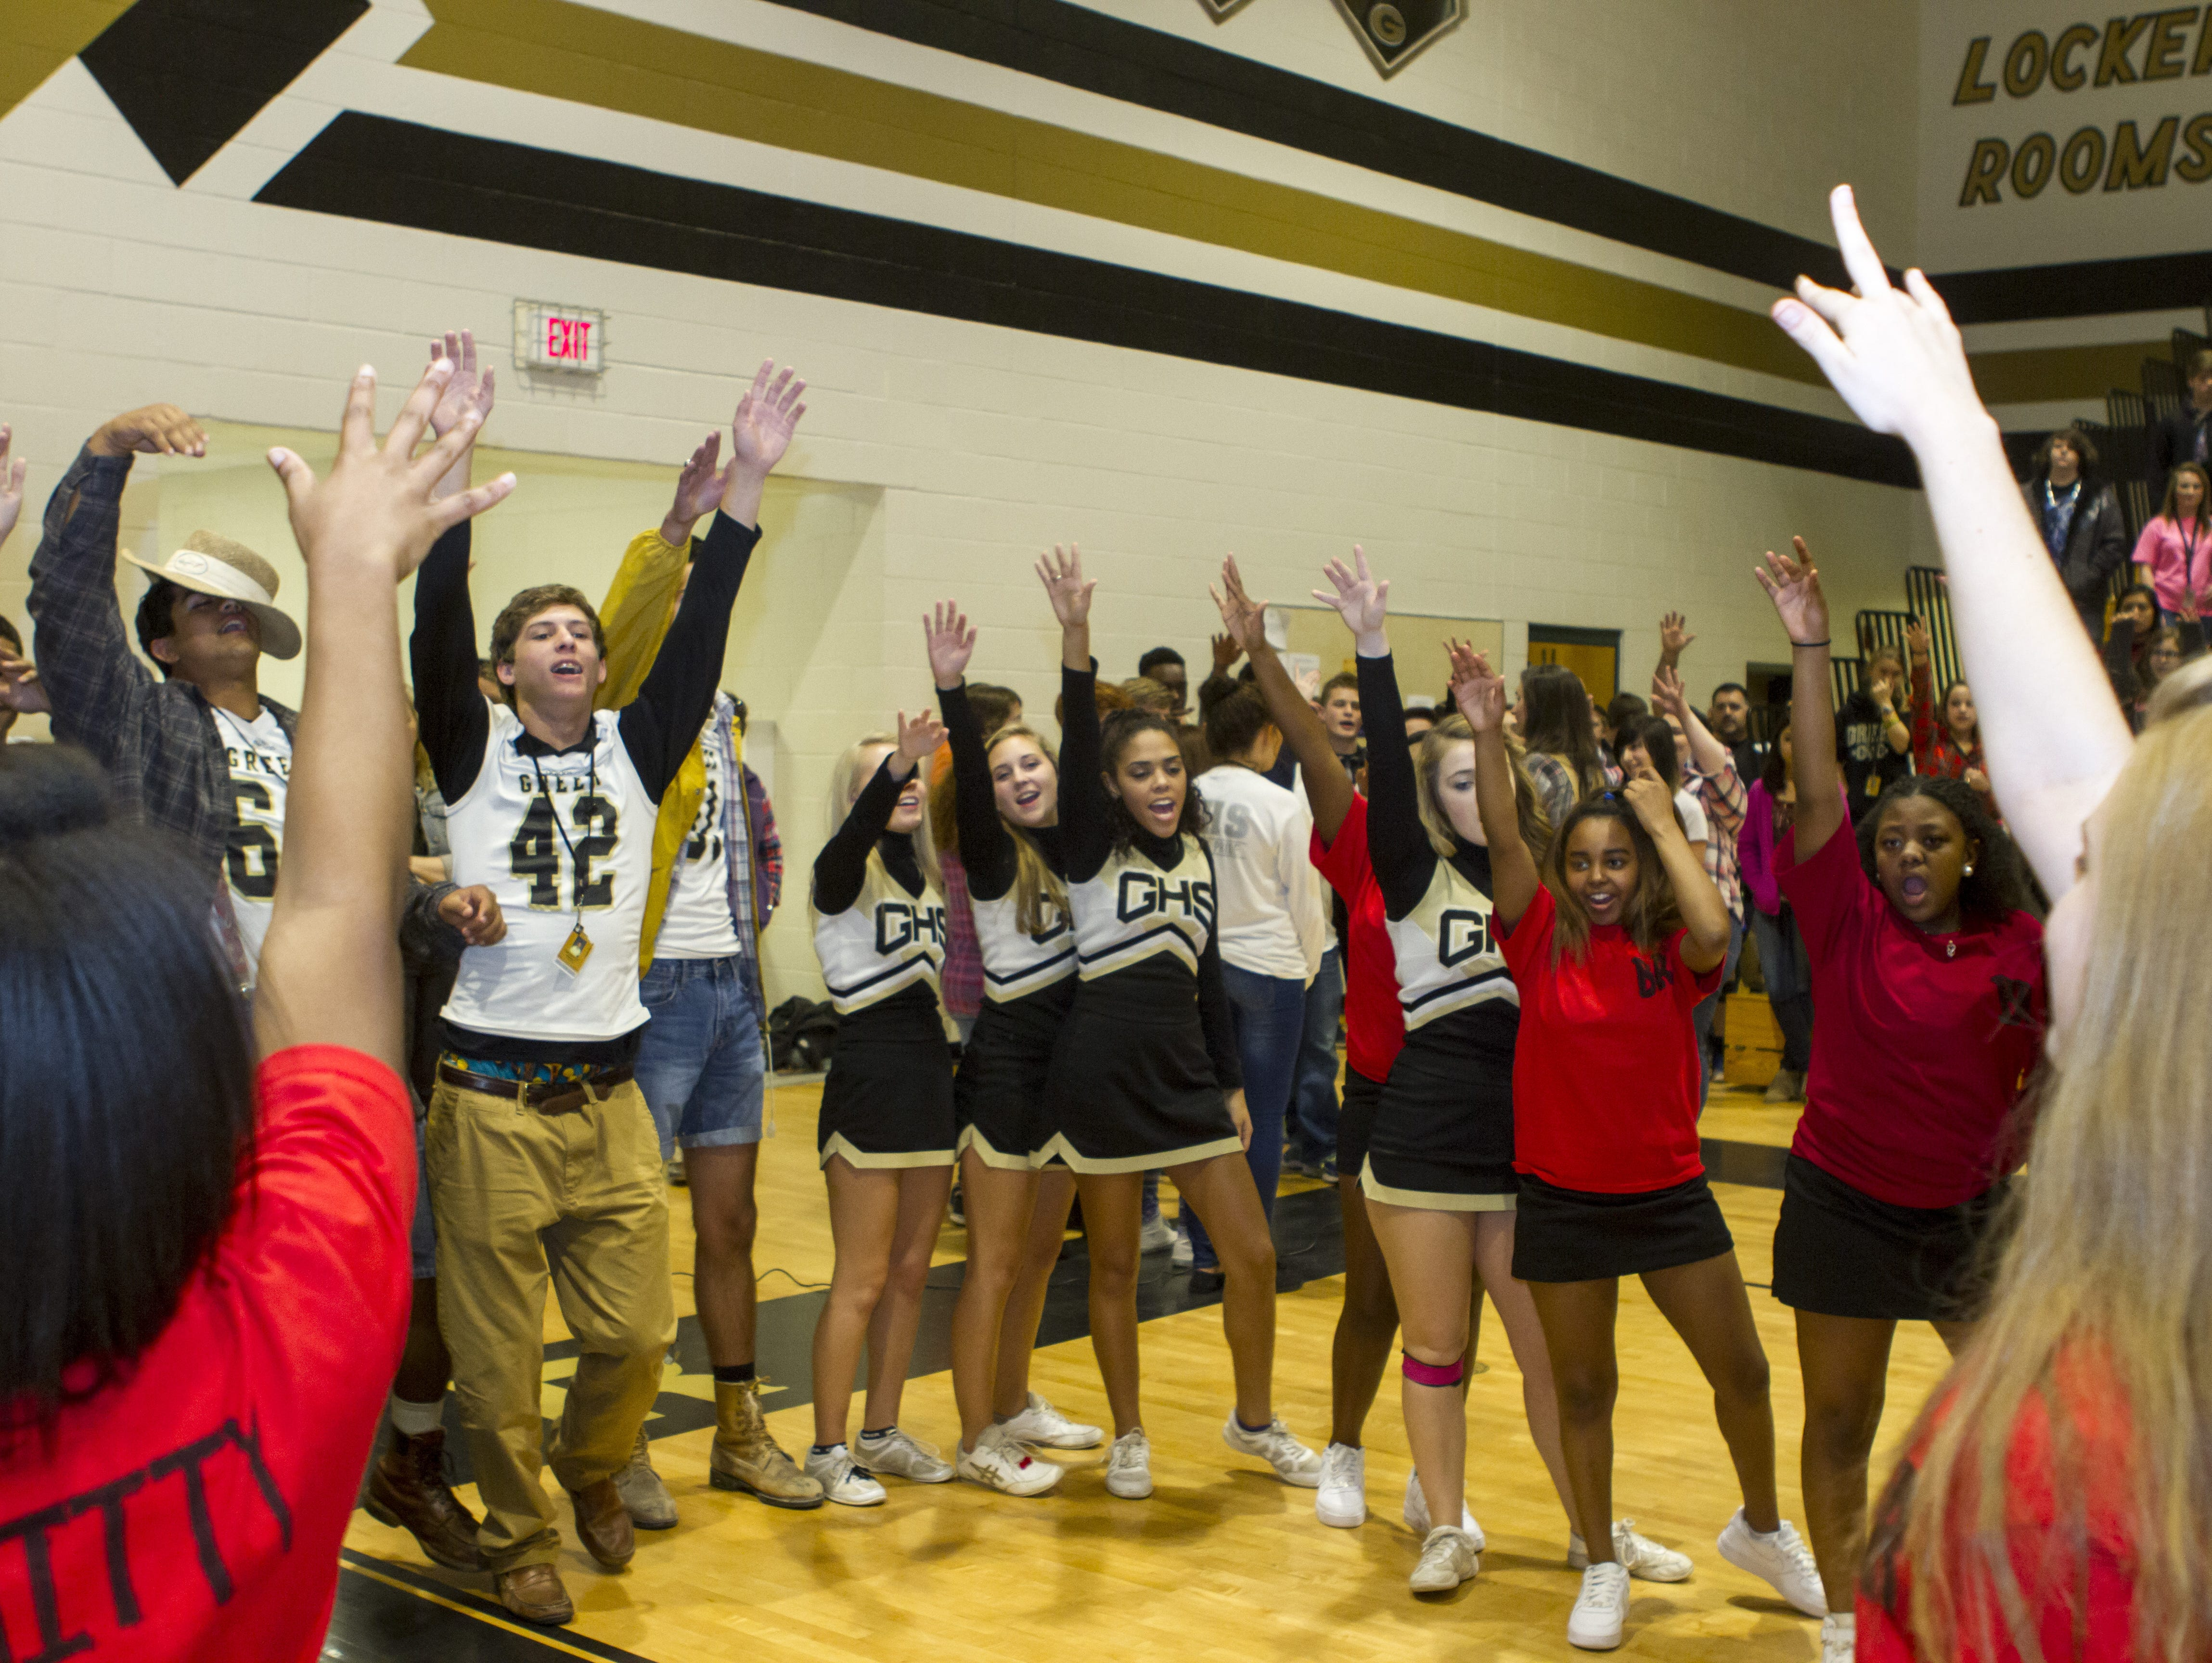 Greer High School football players and cheerleaders come together to sing the school song at a pep rally before the team played Blue Ridge High School. The Yellowjackets defeated the Tigers 32-7.